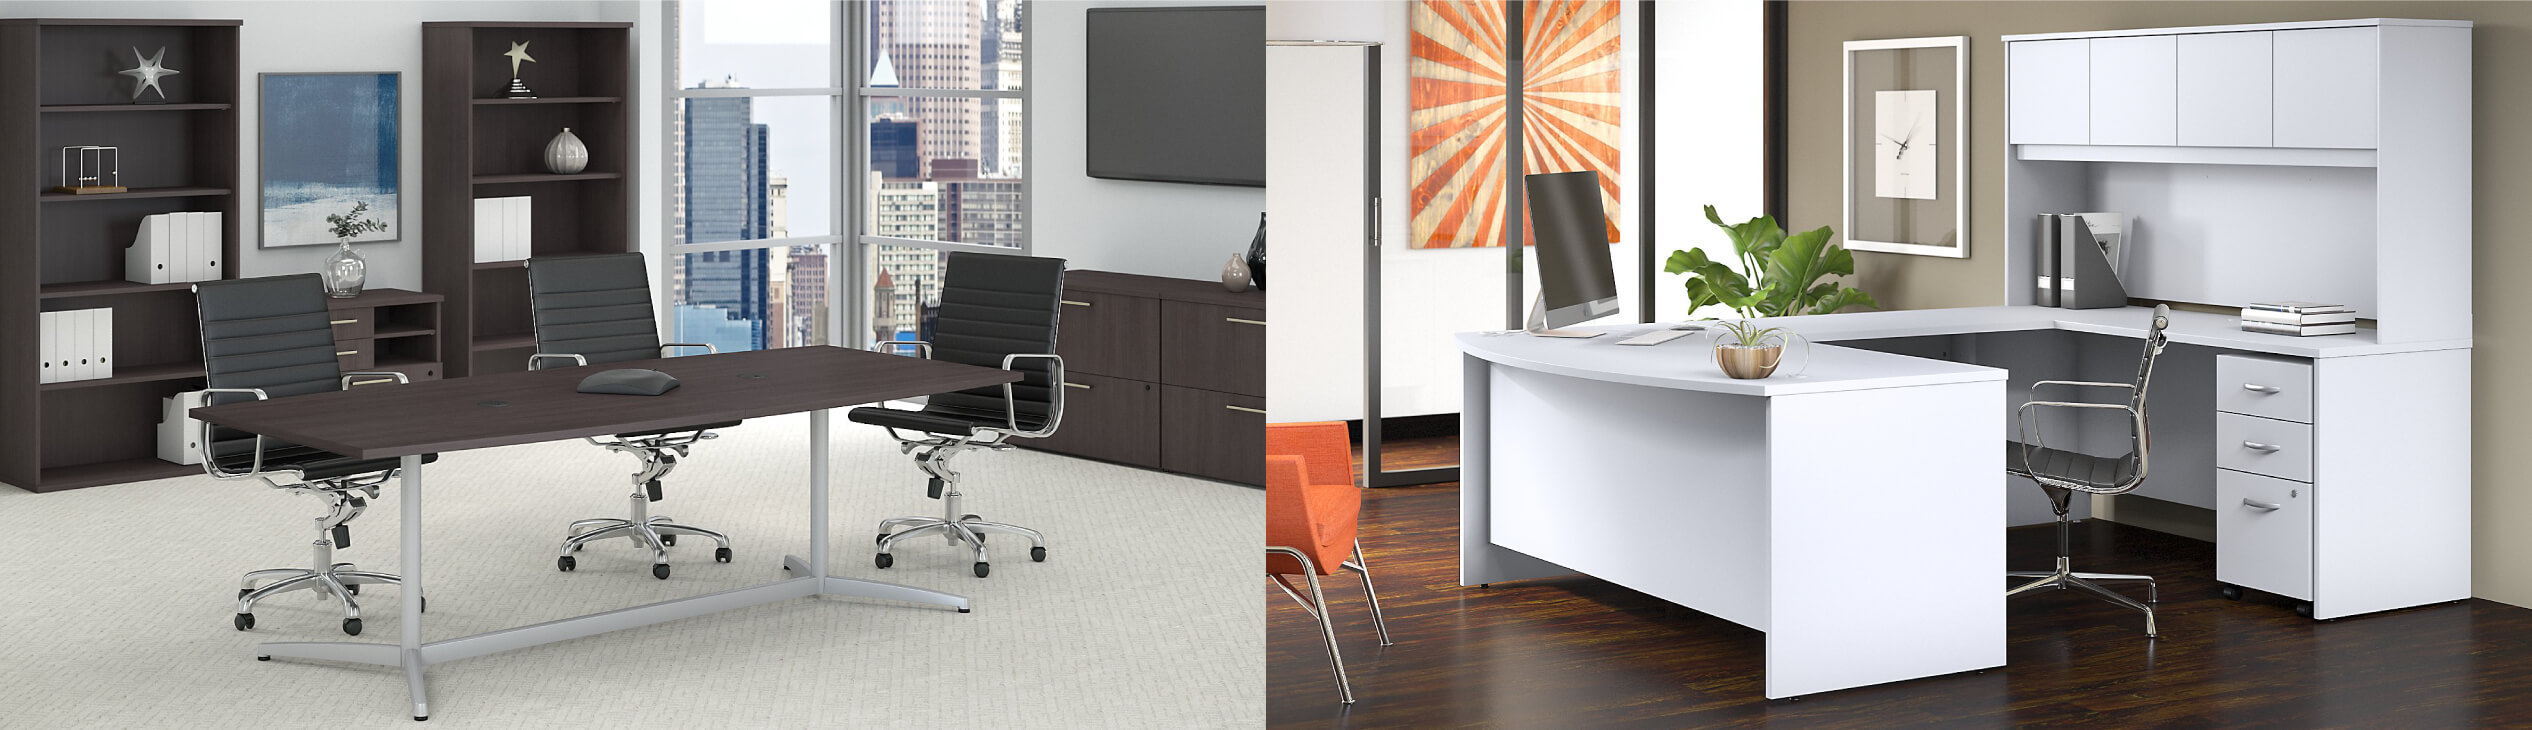 indianapolis office furniture header